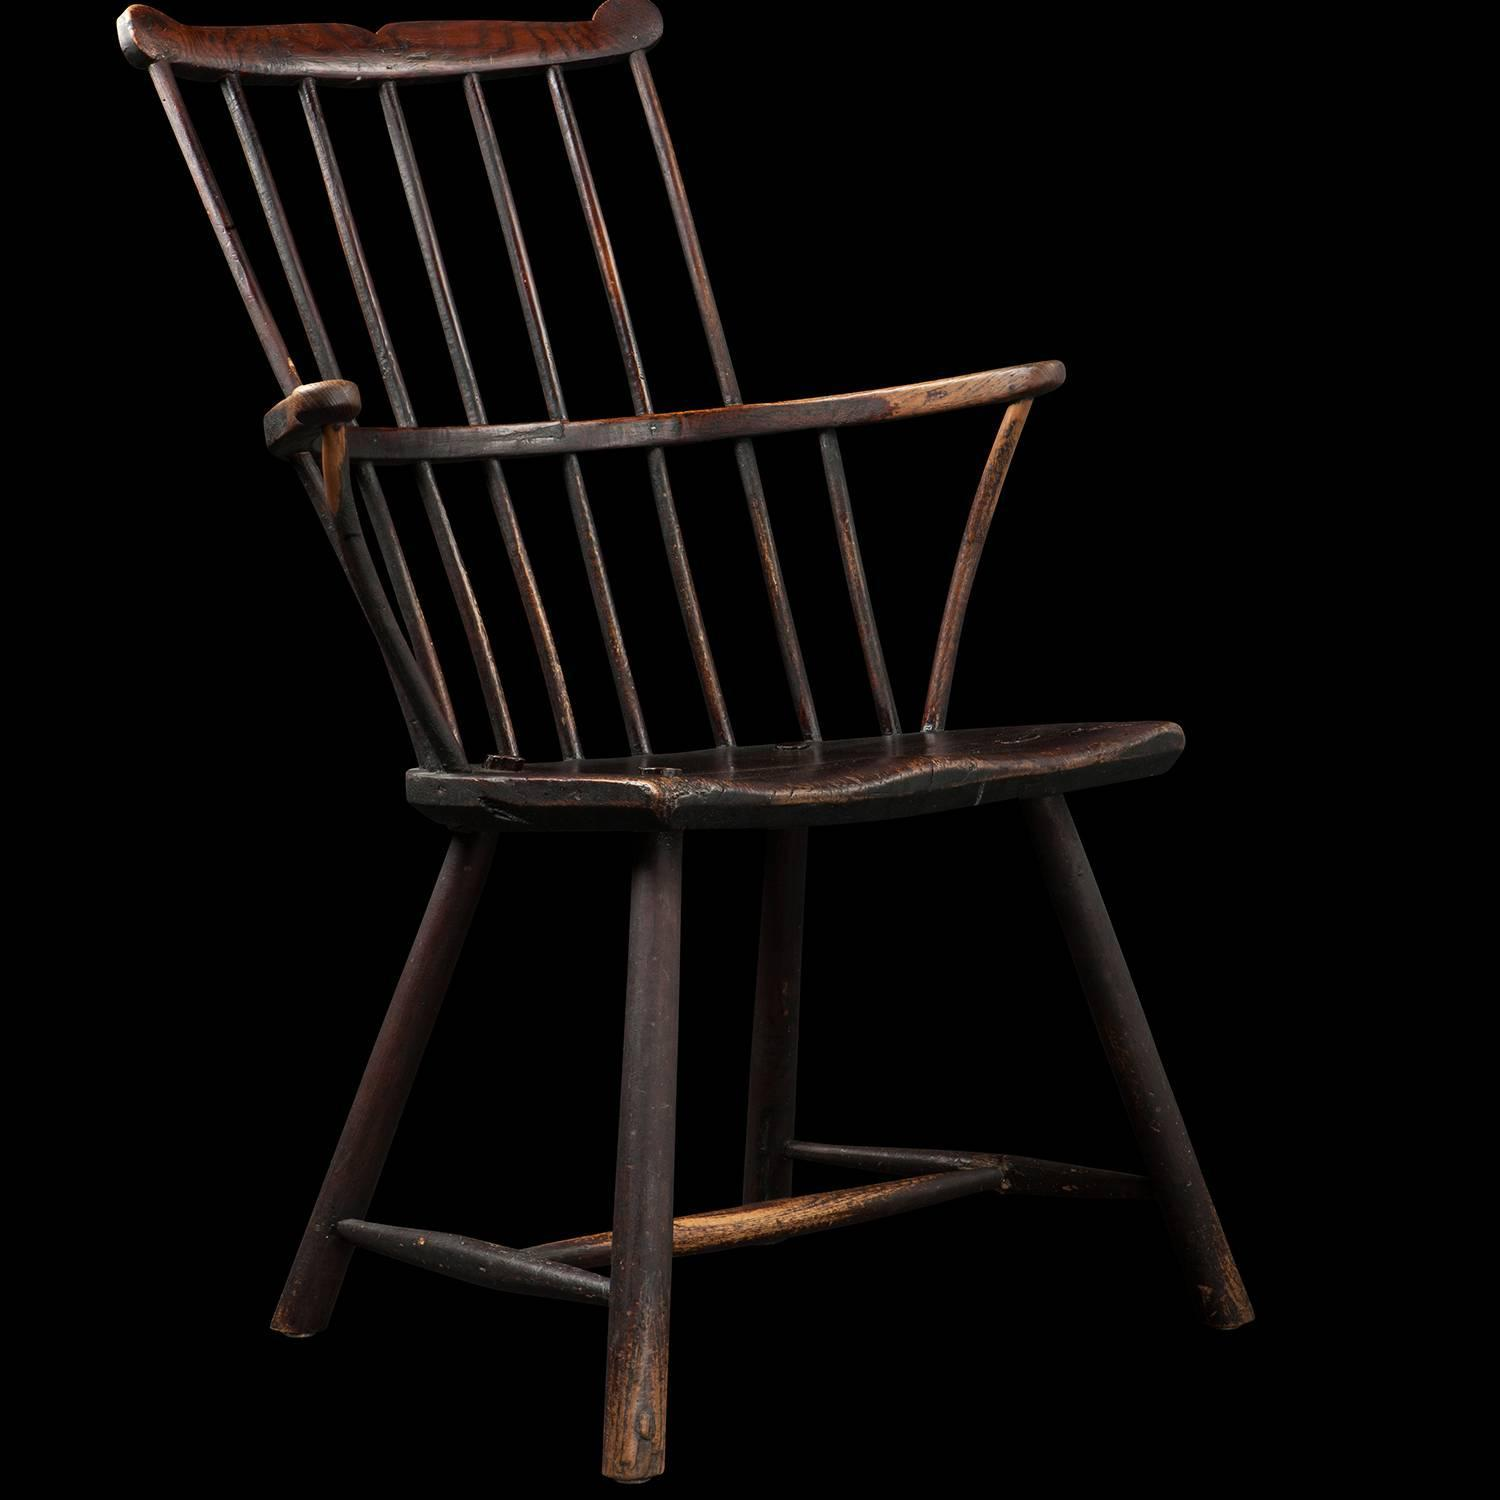 comb back windsor chair foldable lounge indoor for sale at 1stdibs